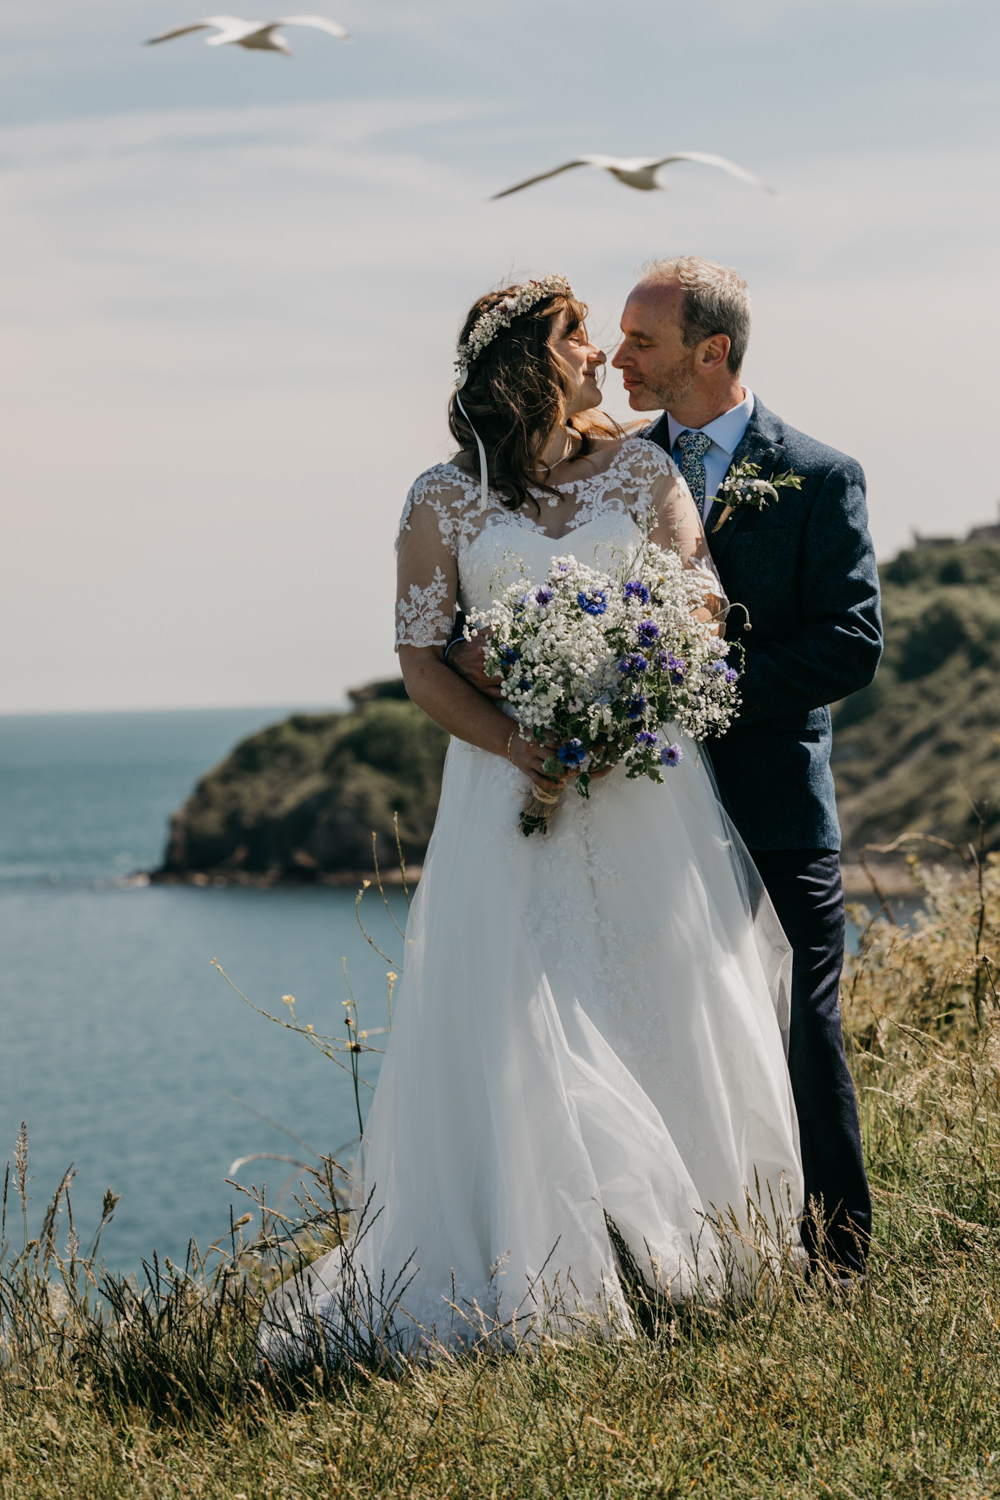 Dress Gown Bride Bridal Lace Short Sleeves Flower Crown Seaside Wedding Oli and Steph Photography